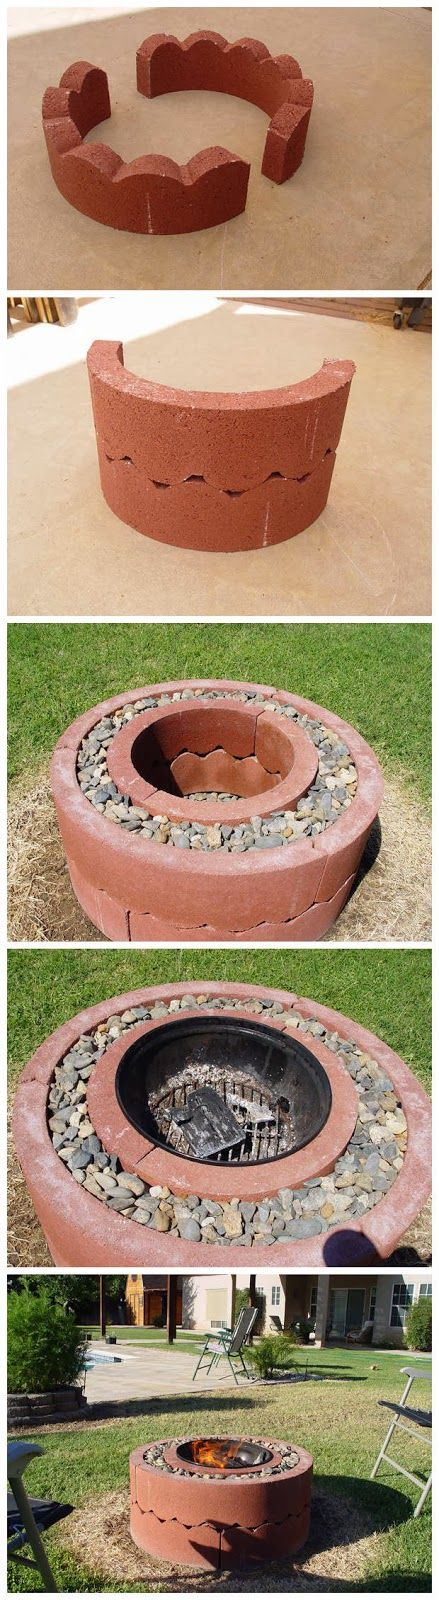 $50 fire pit using concrete tree rings. I've always wanted a fire pit at my house! This one looks easy and stylish!